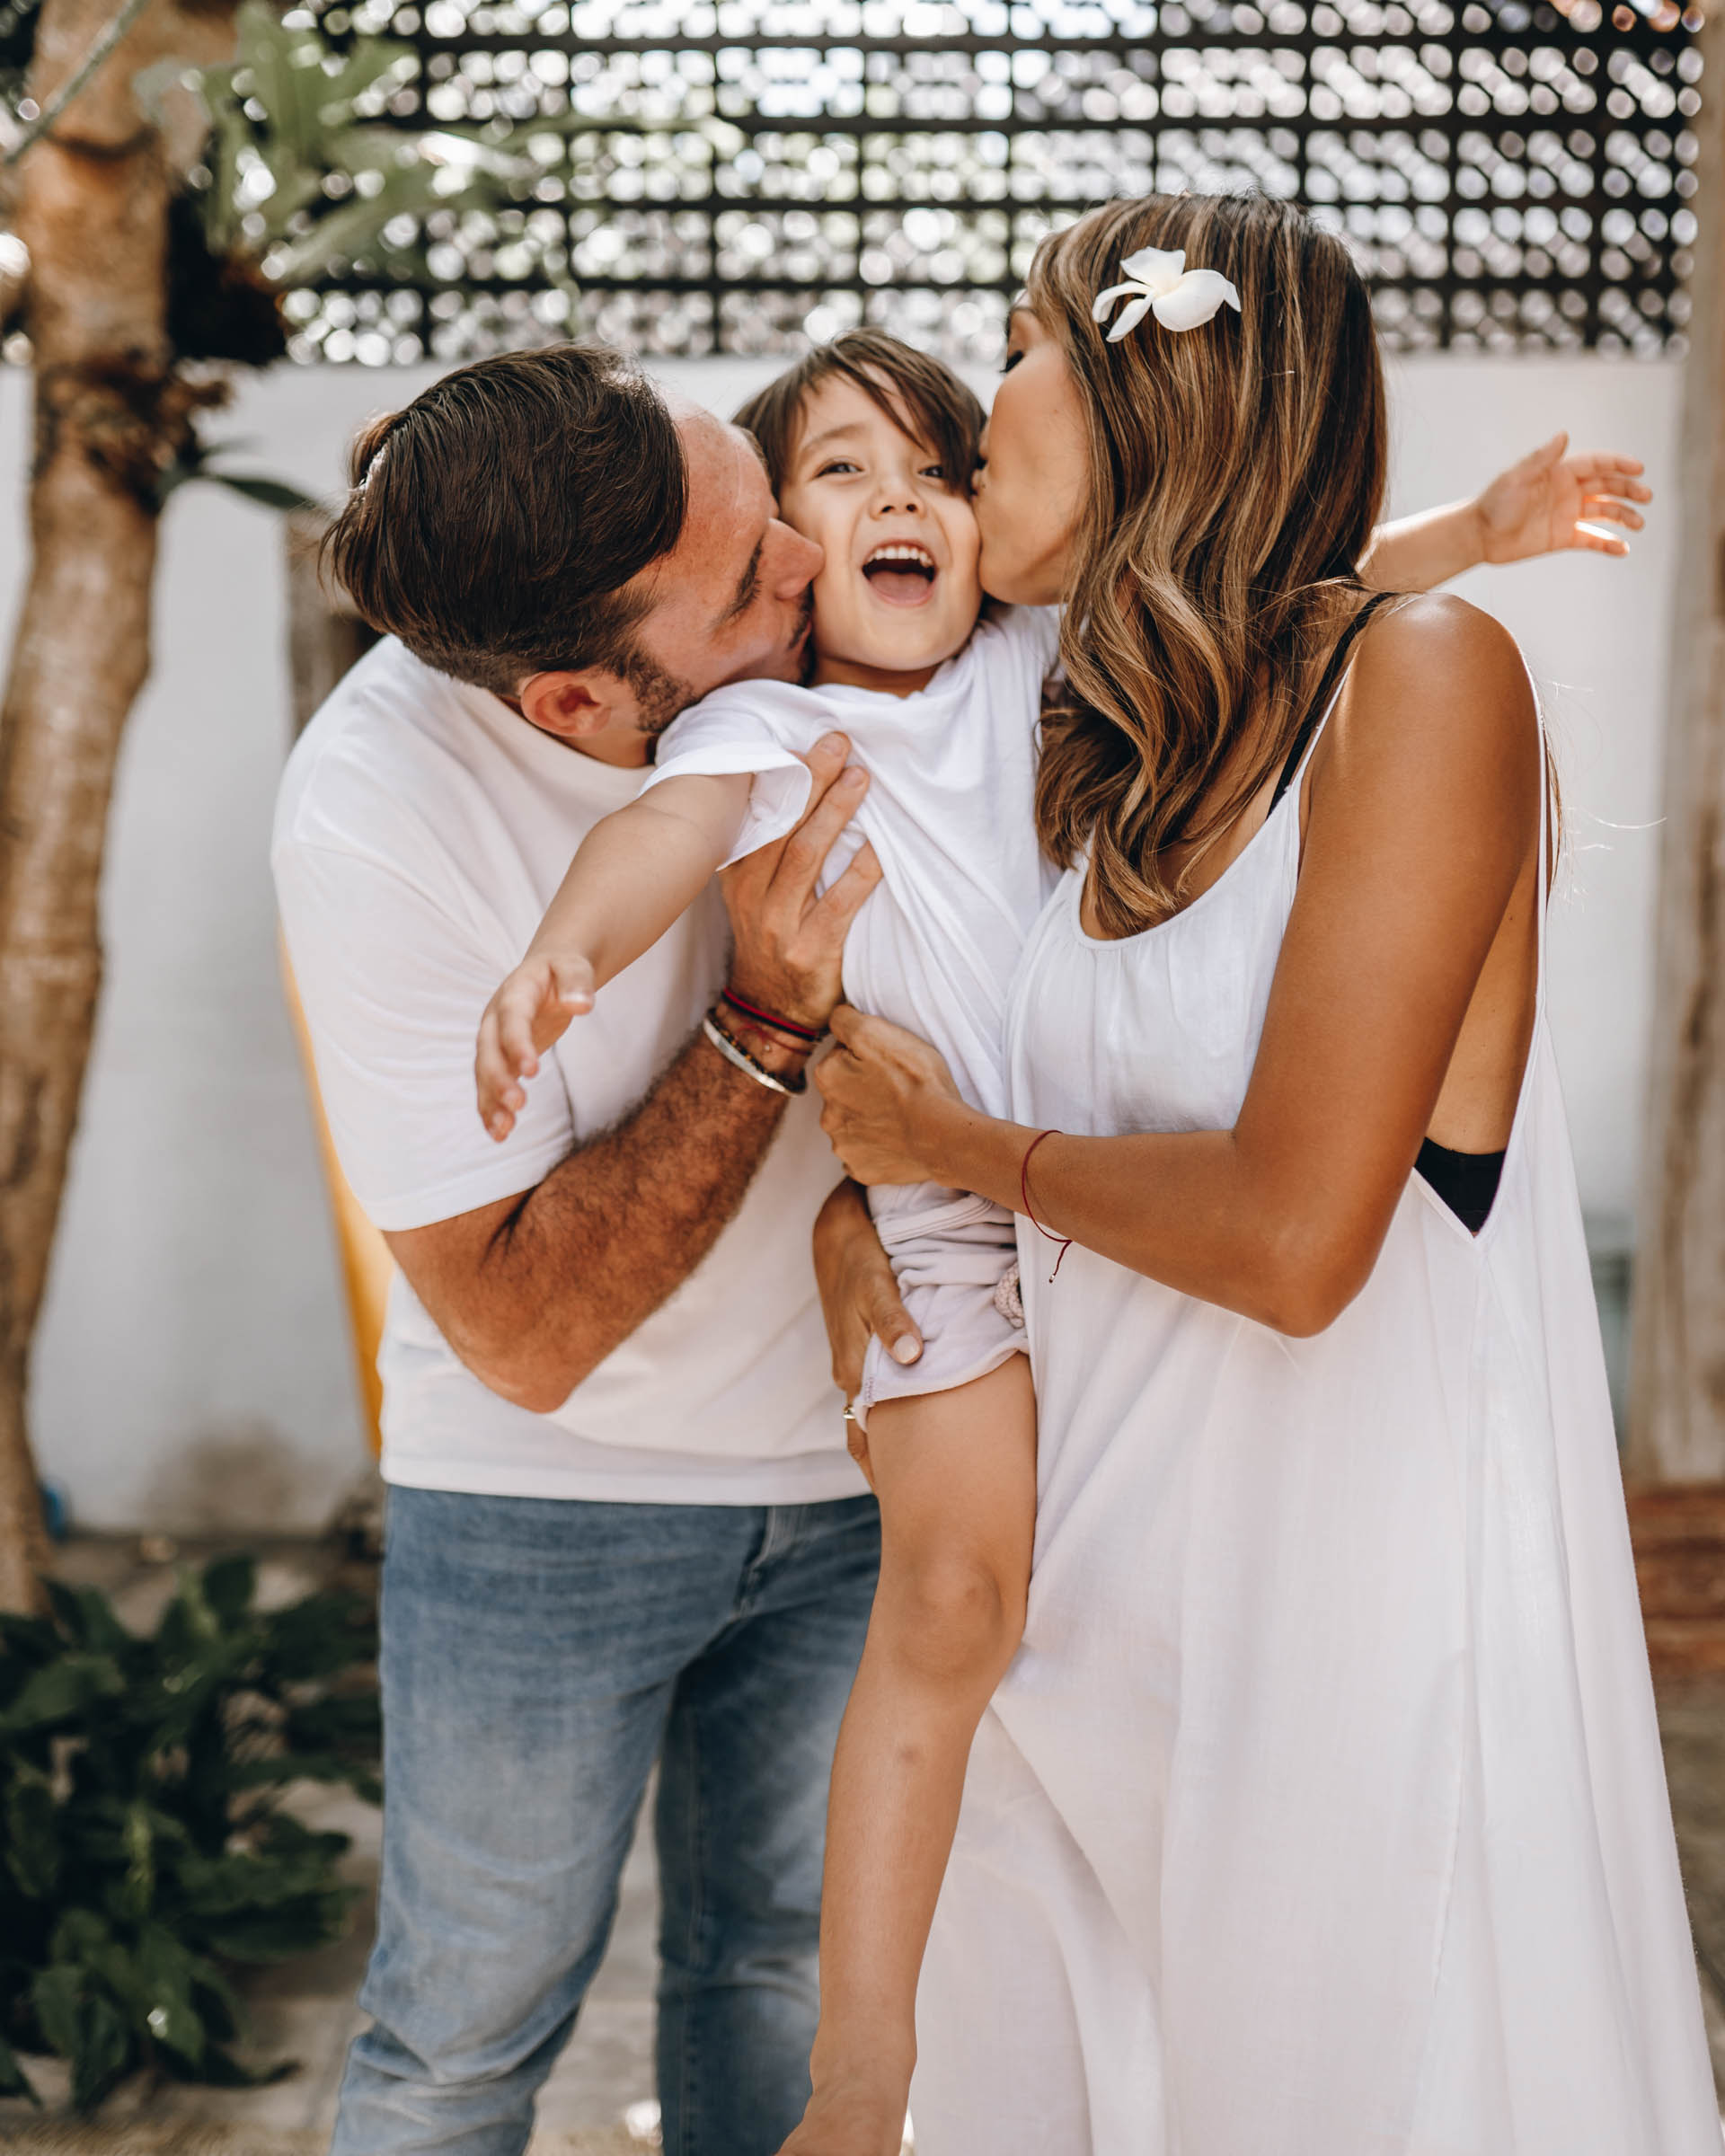 keira-mason-fourcard-family-shoot-family-in-love.jpg